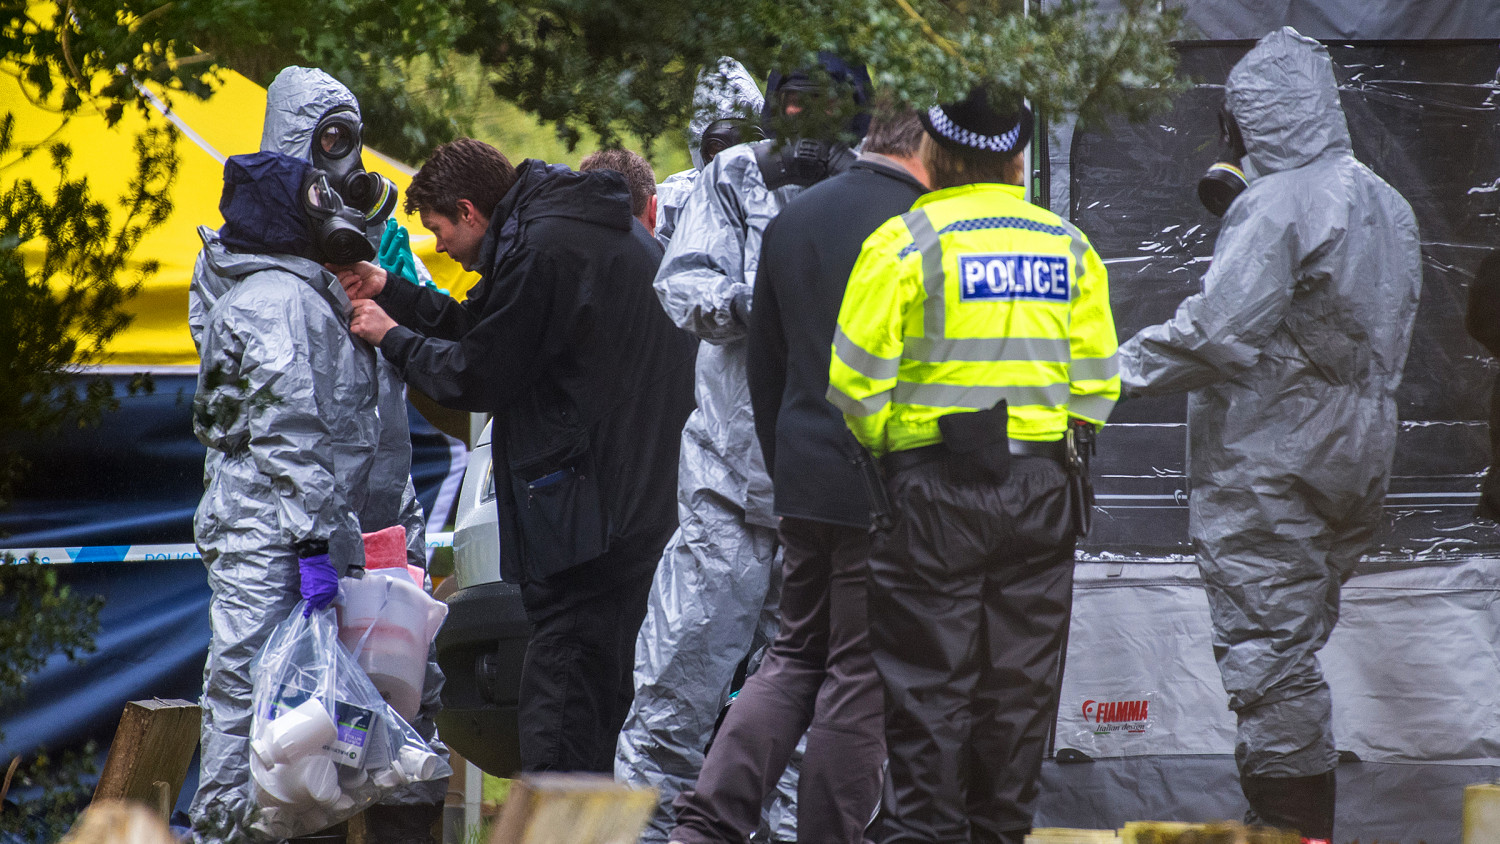 Police officers wear protective suits and breathing apparatus in London Road cemetery as they continue investigations into the poisoning of Sergei Skripal who was found critically ill on a bench in Salisbury on March 10, 2018 in Salisbury, England. (Chris J Ratcliffe/Getty Images)